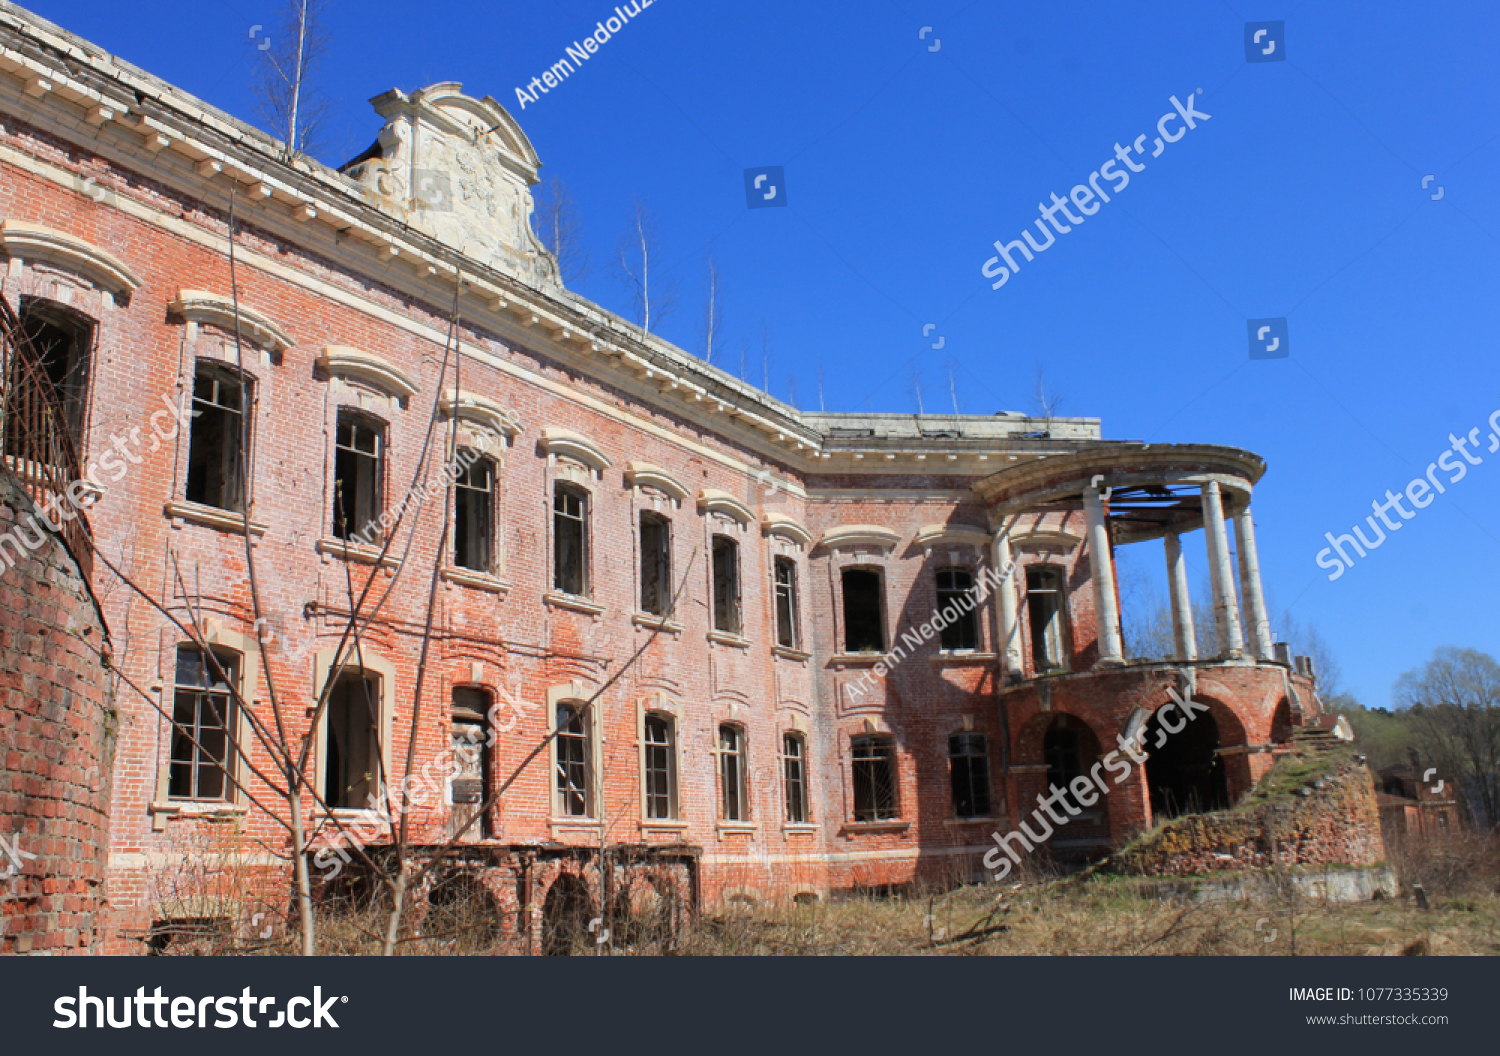 Semyonovskoe Moscow Oblast Russia May 02 Stock Photo (Edit Now